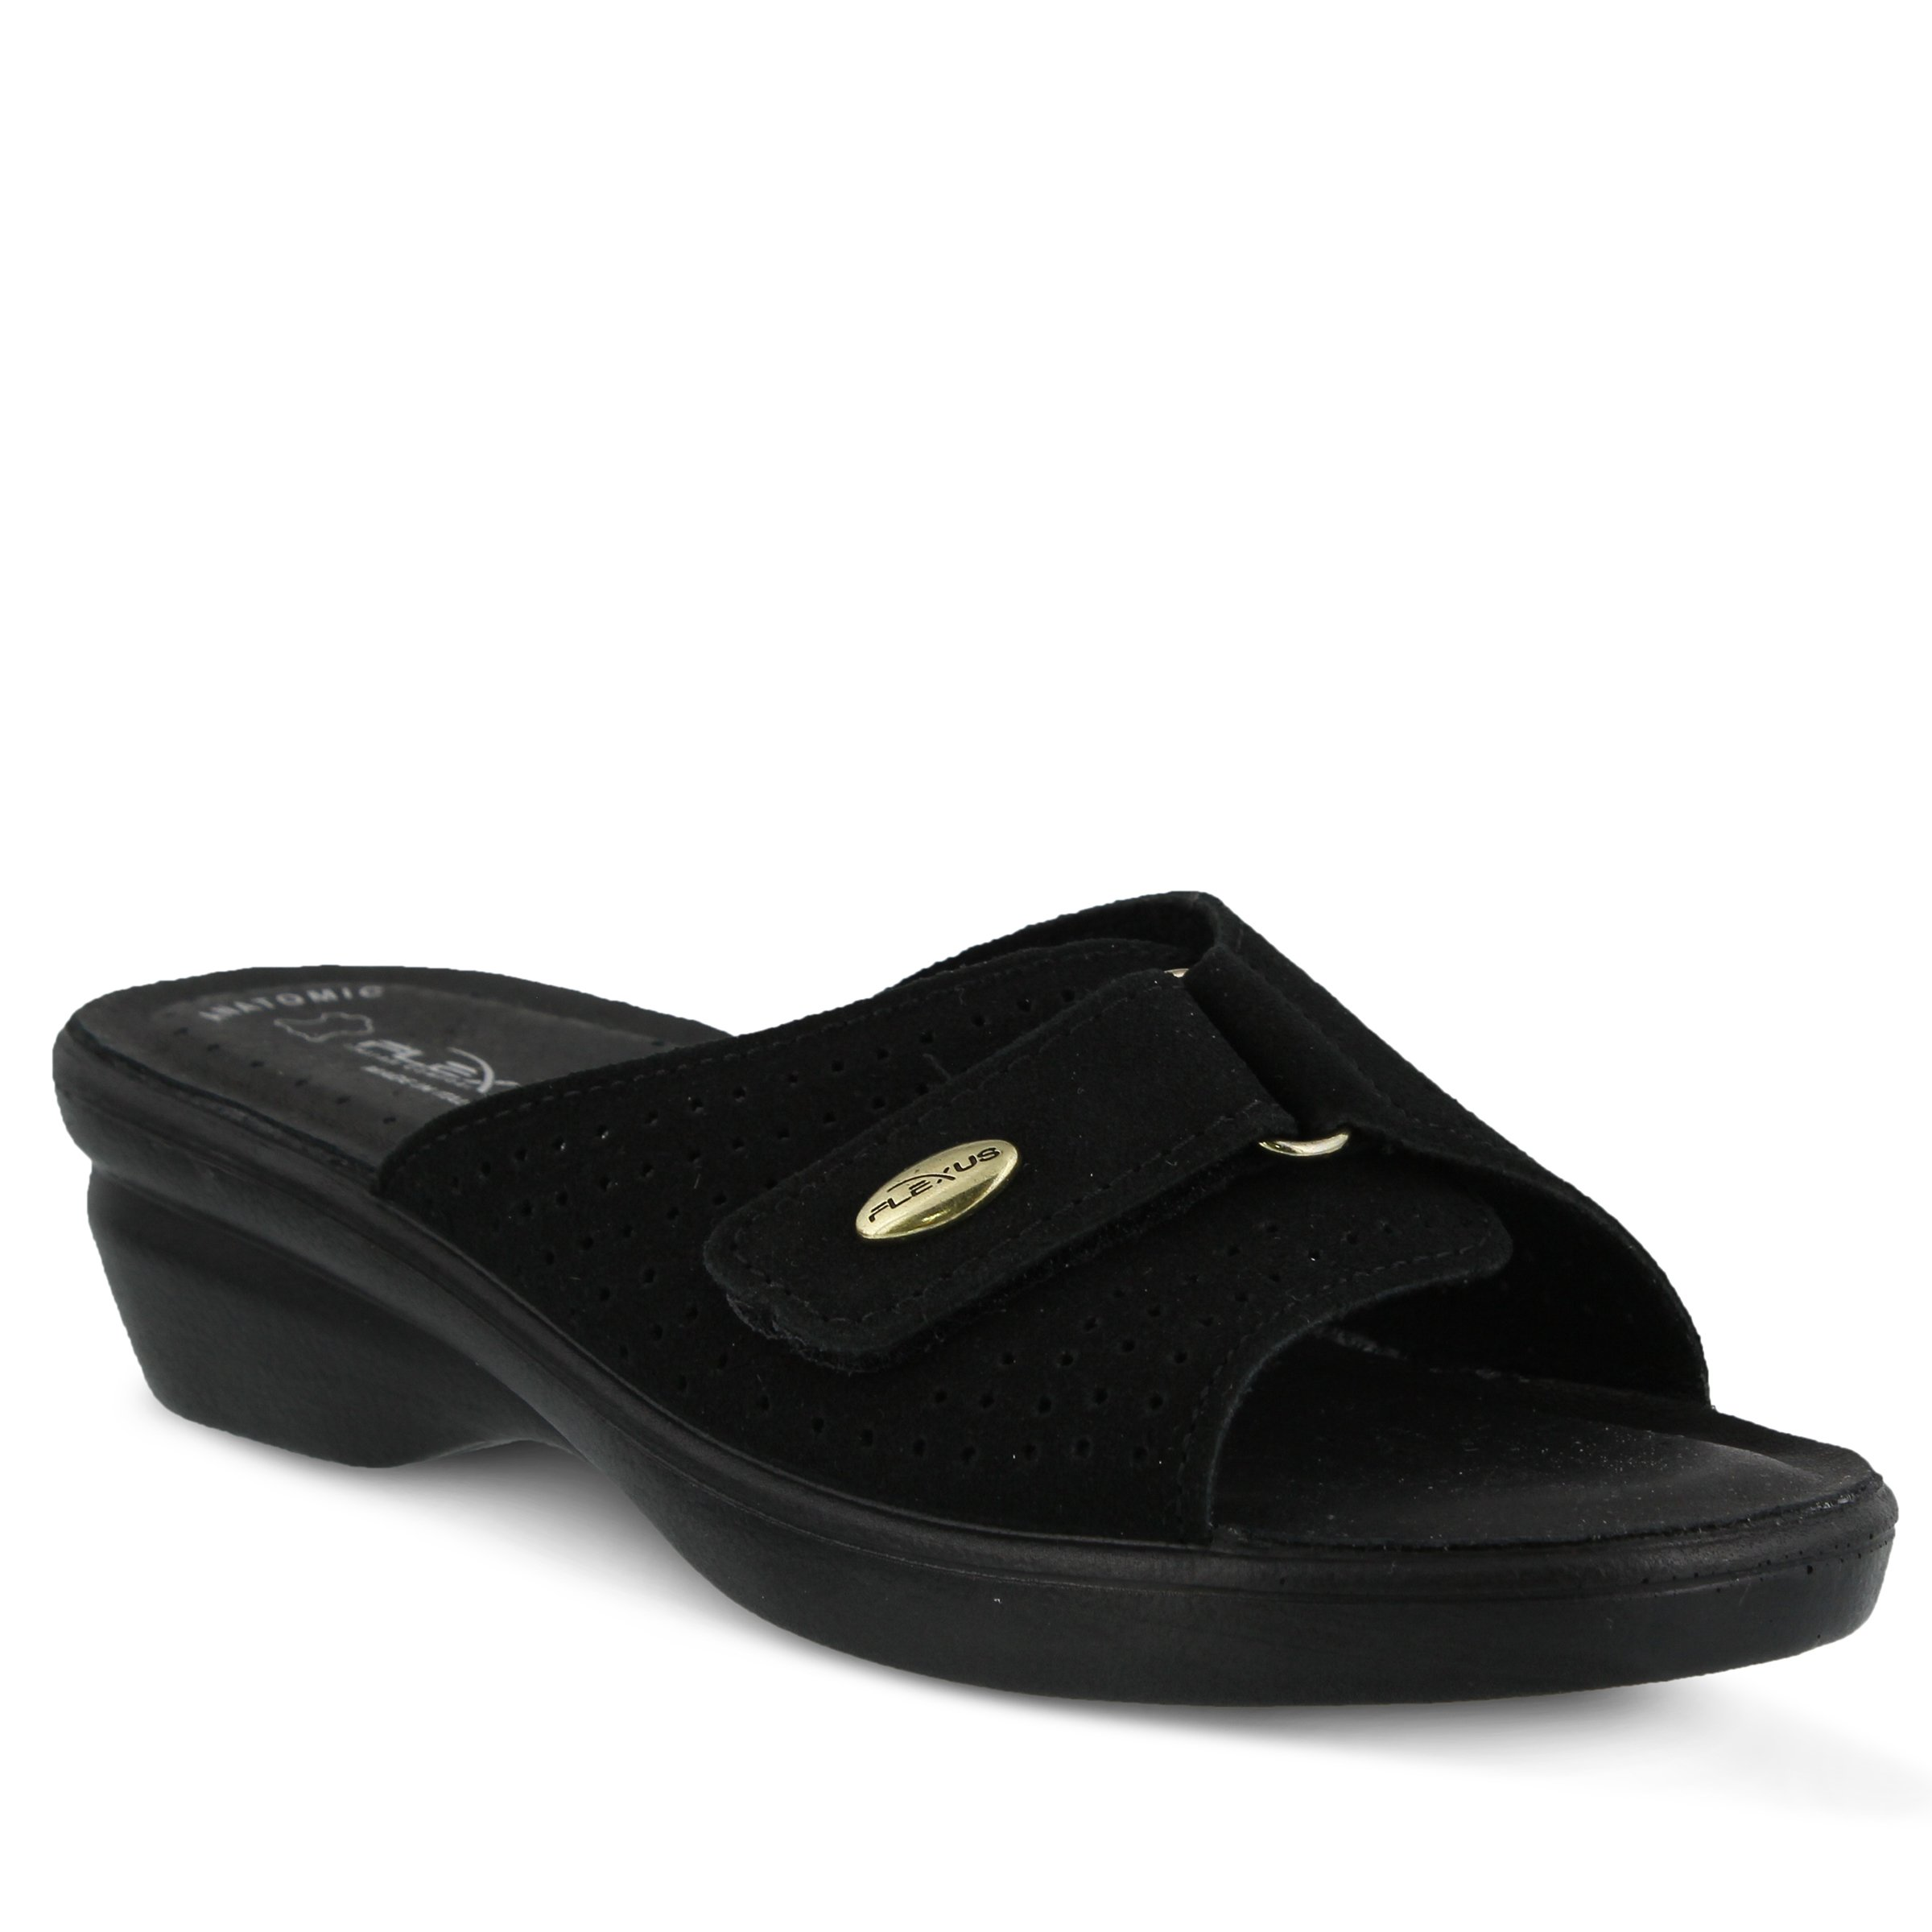 Flexus Women's Kea Slide Sandals